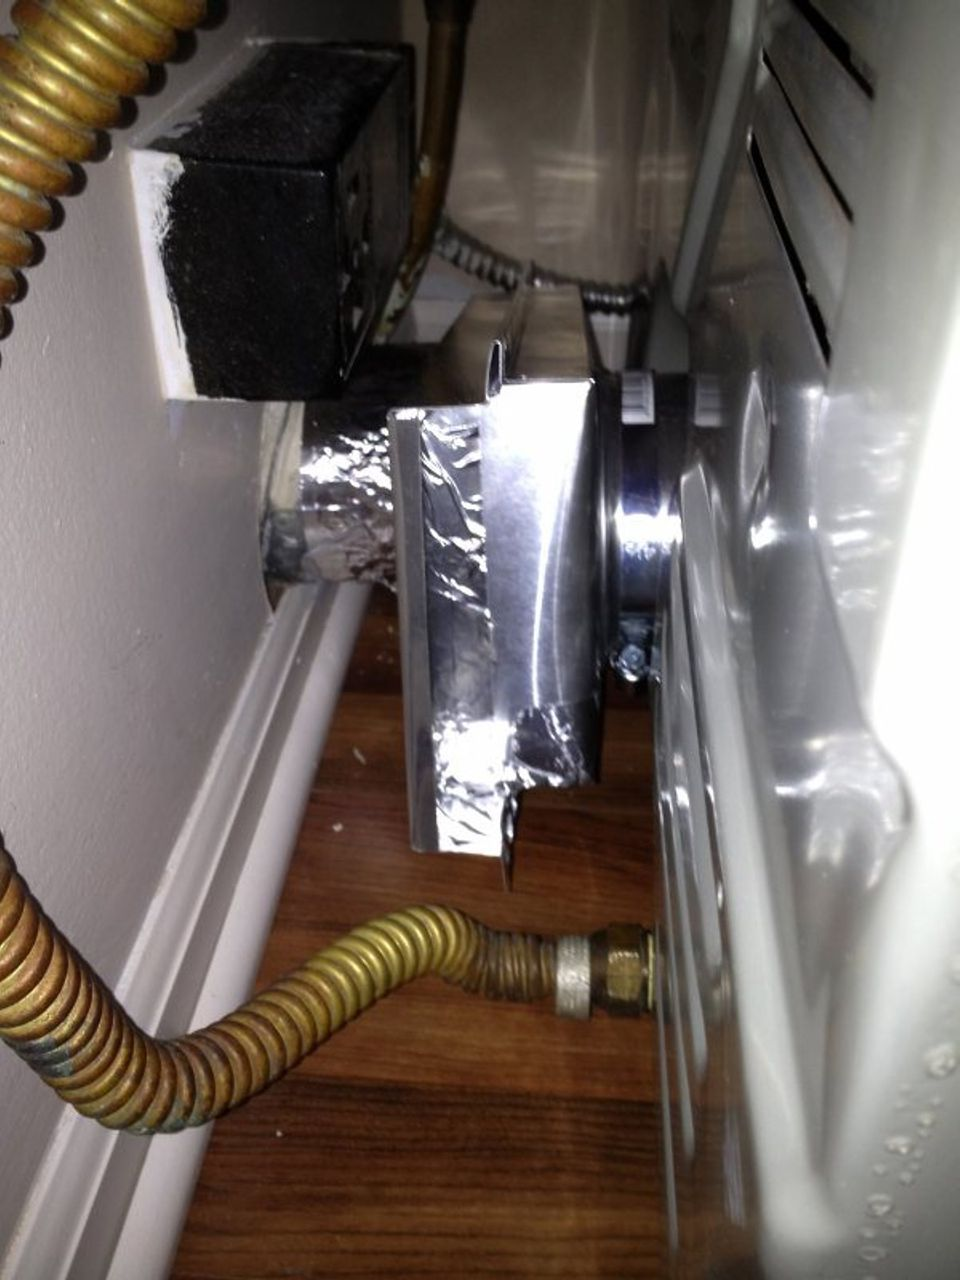 Installation Of A Dryer Vent In A Tight Space